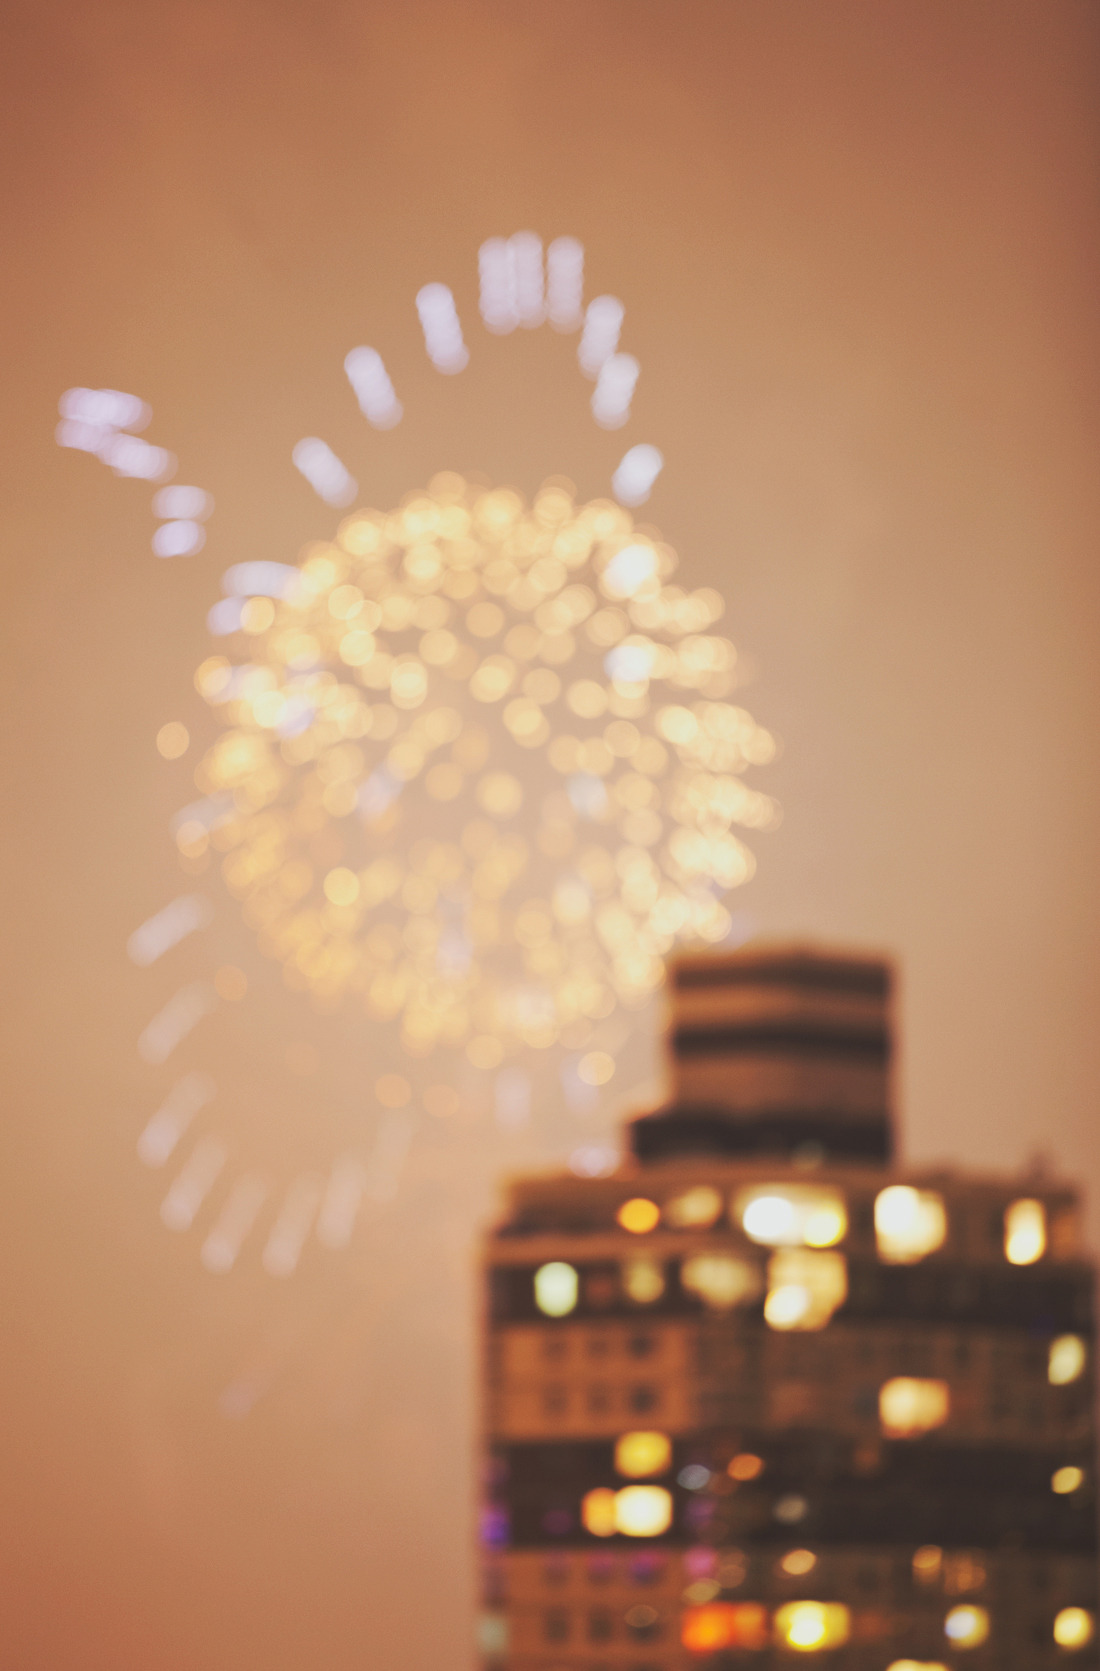 Happy Fourth of July from NYC. (by Moey Hoque)